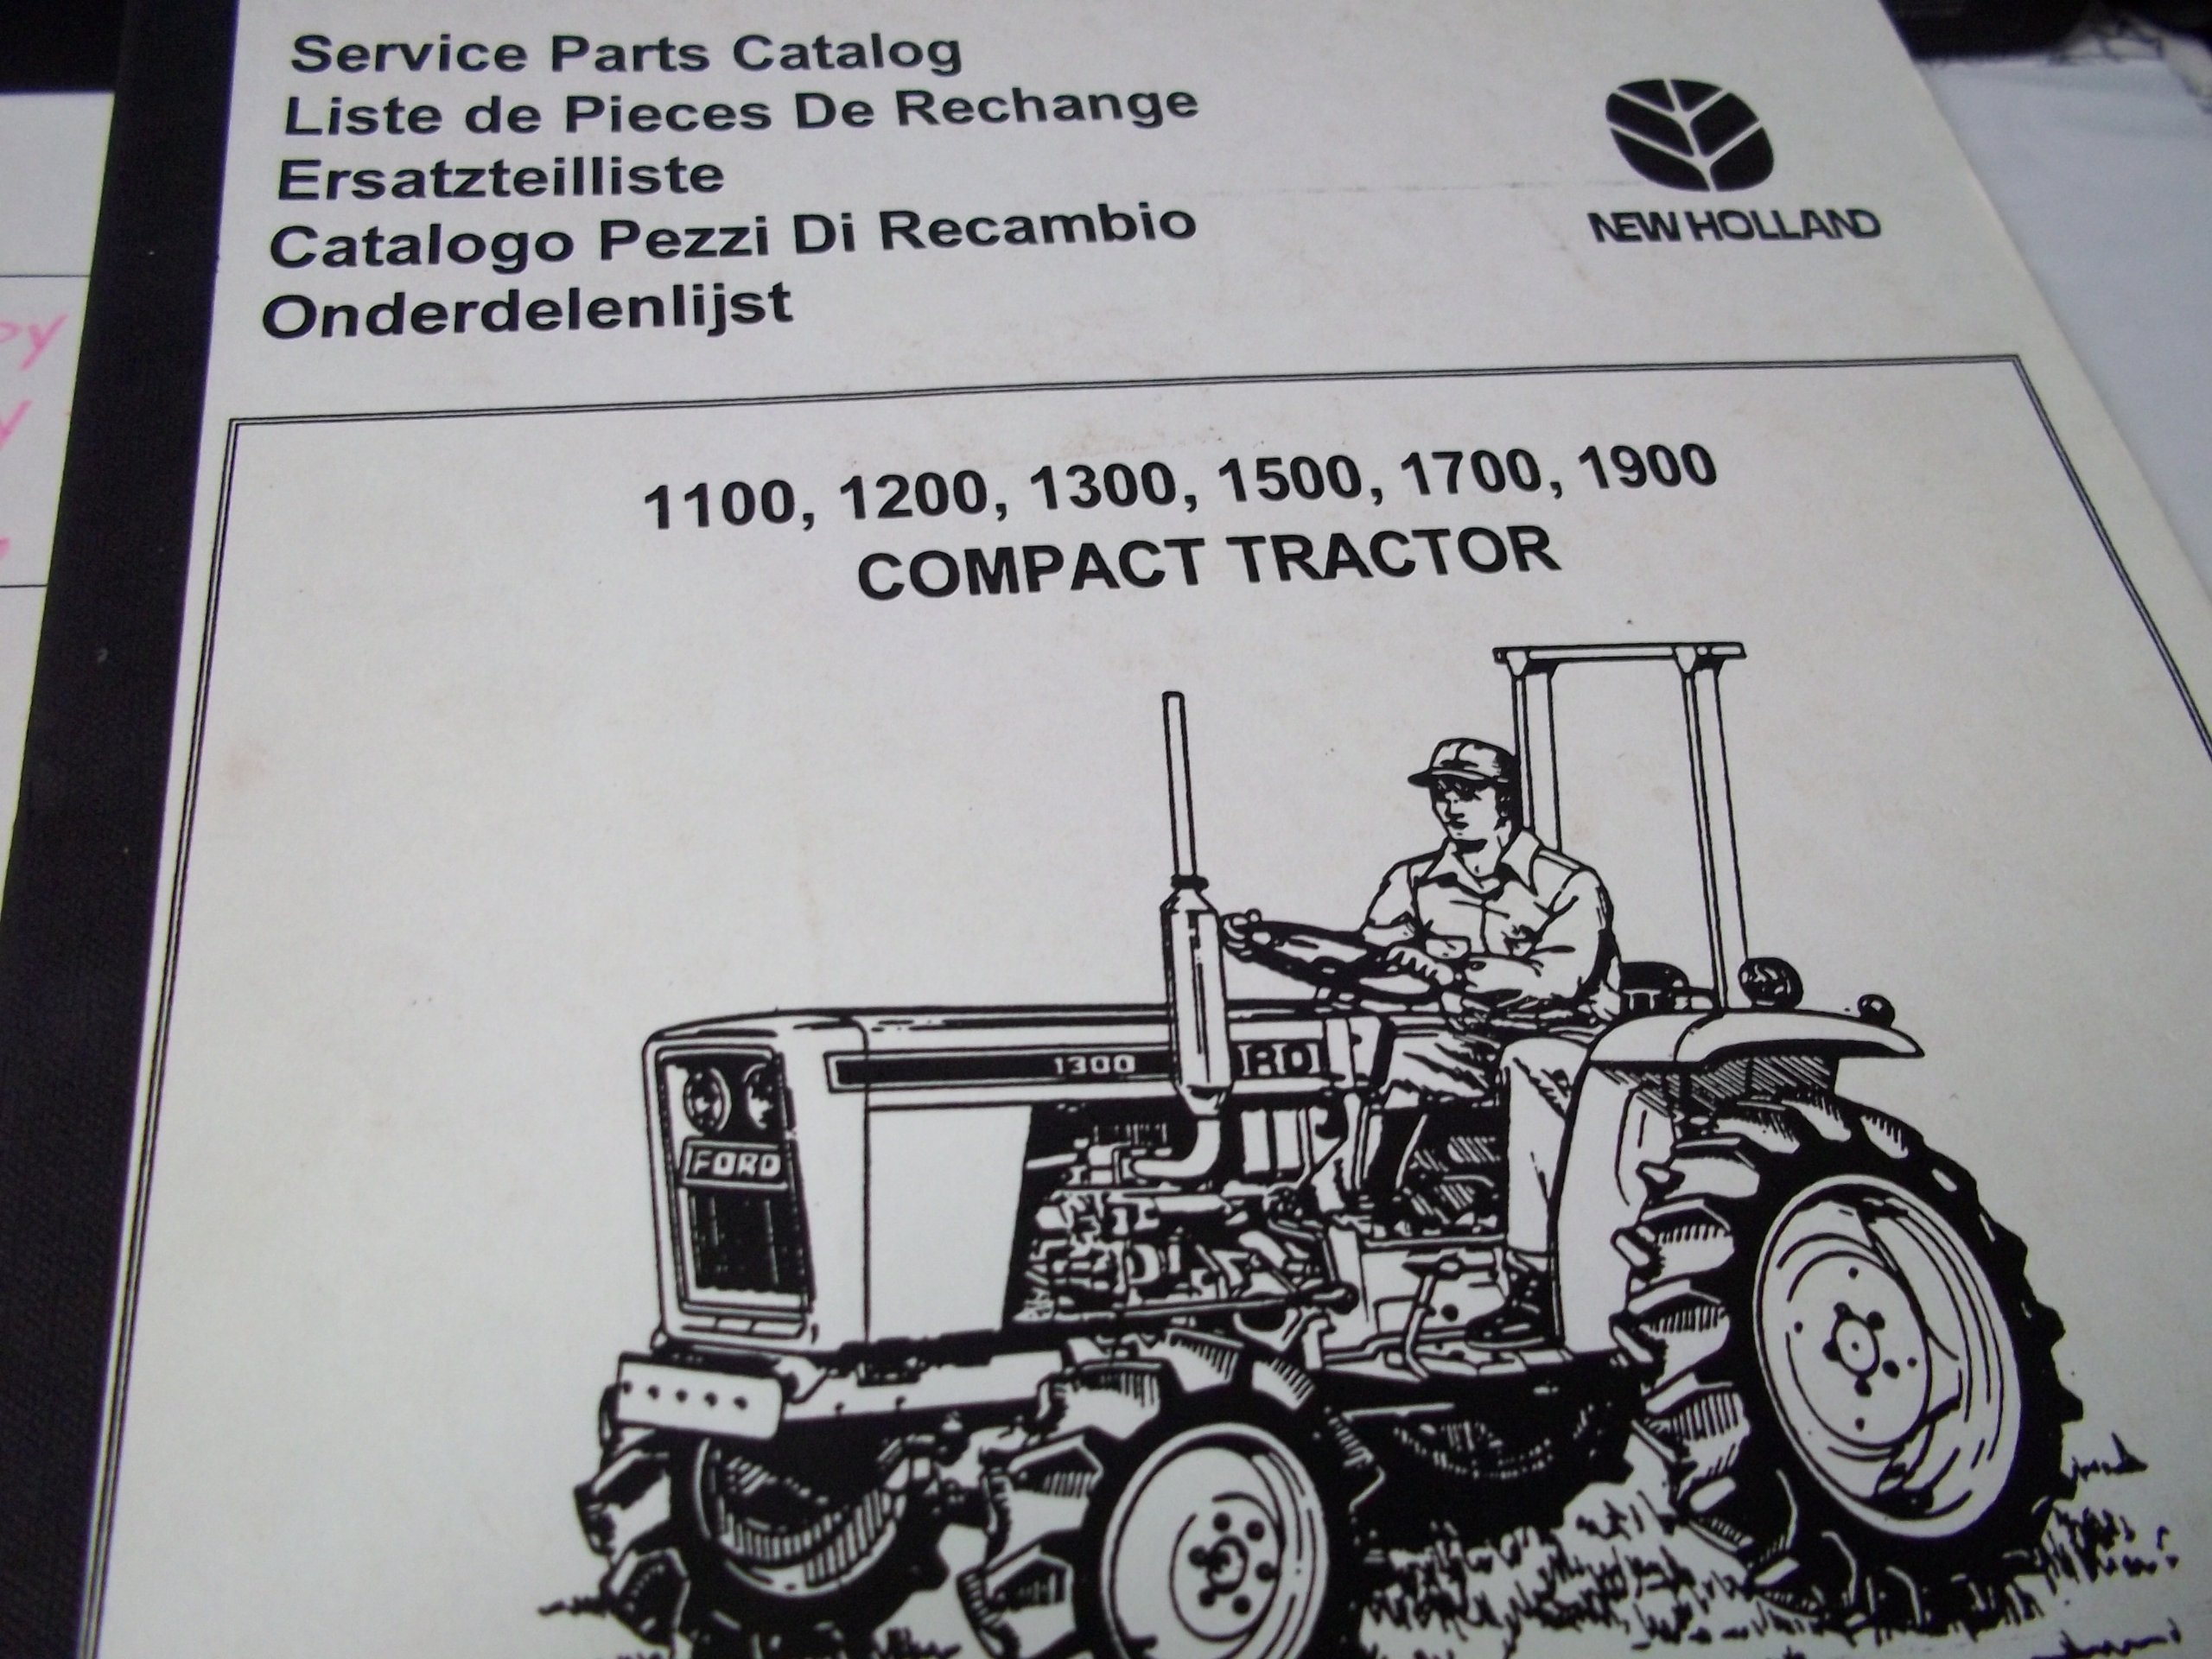 New Holland 1100/1200/1300/1500/1700/1900 Compact Tractor